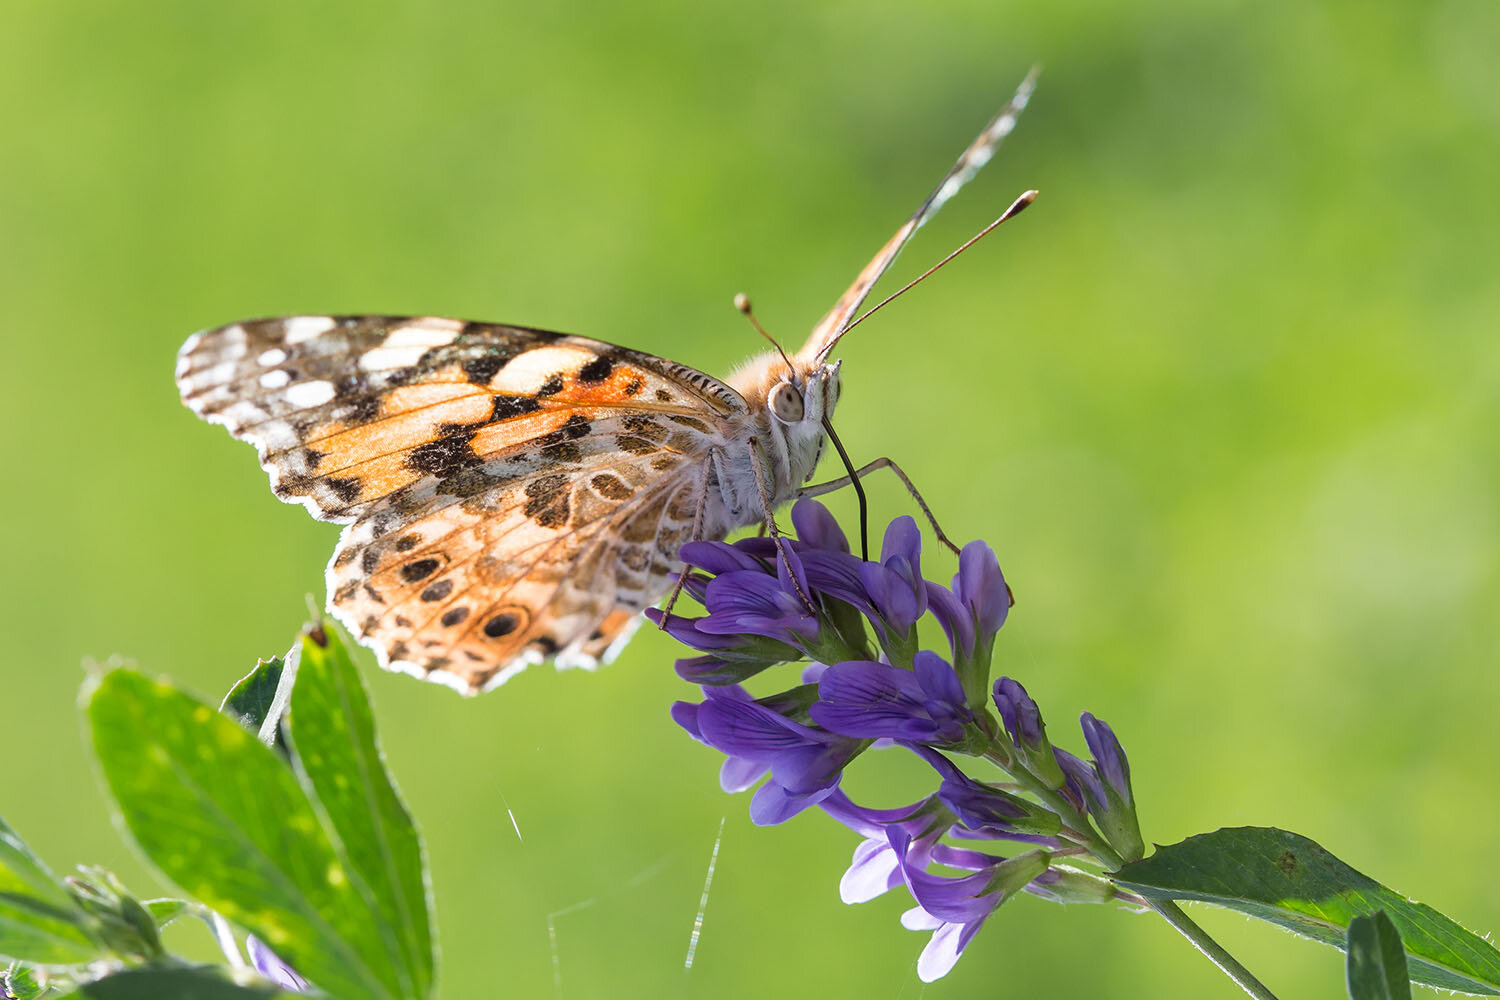 Butterflies cross the Sahara in longest-known insect migration